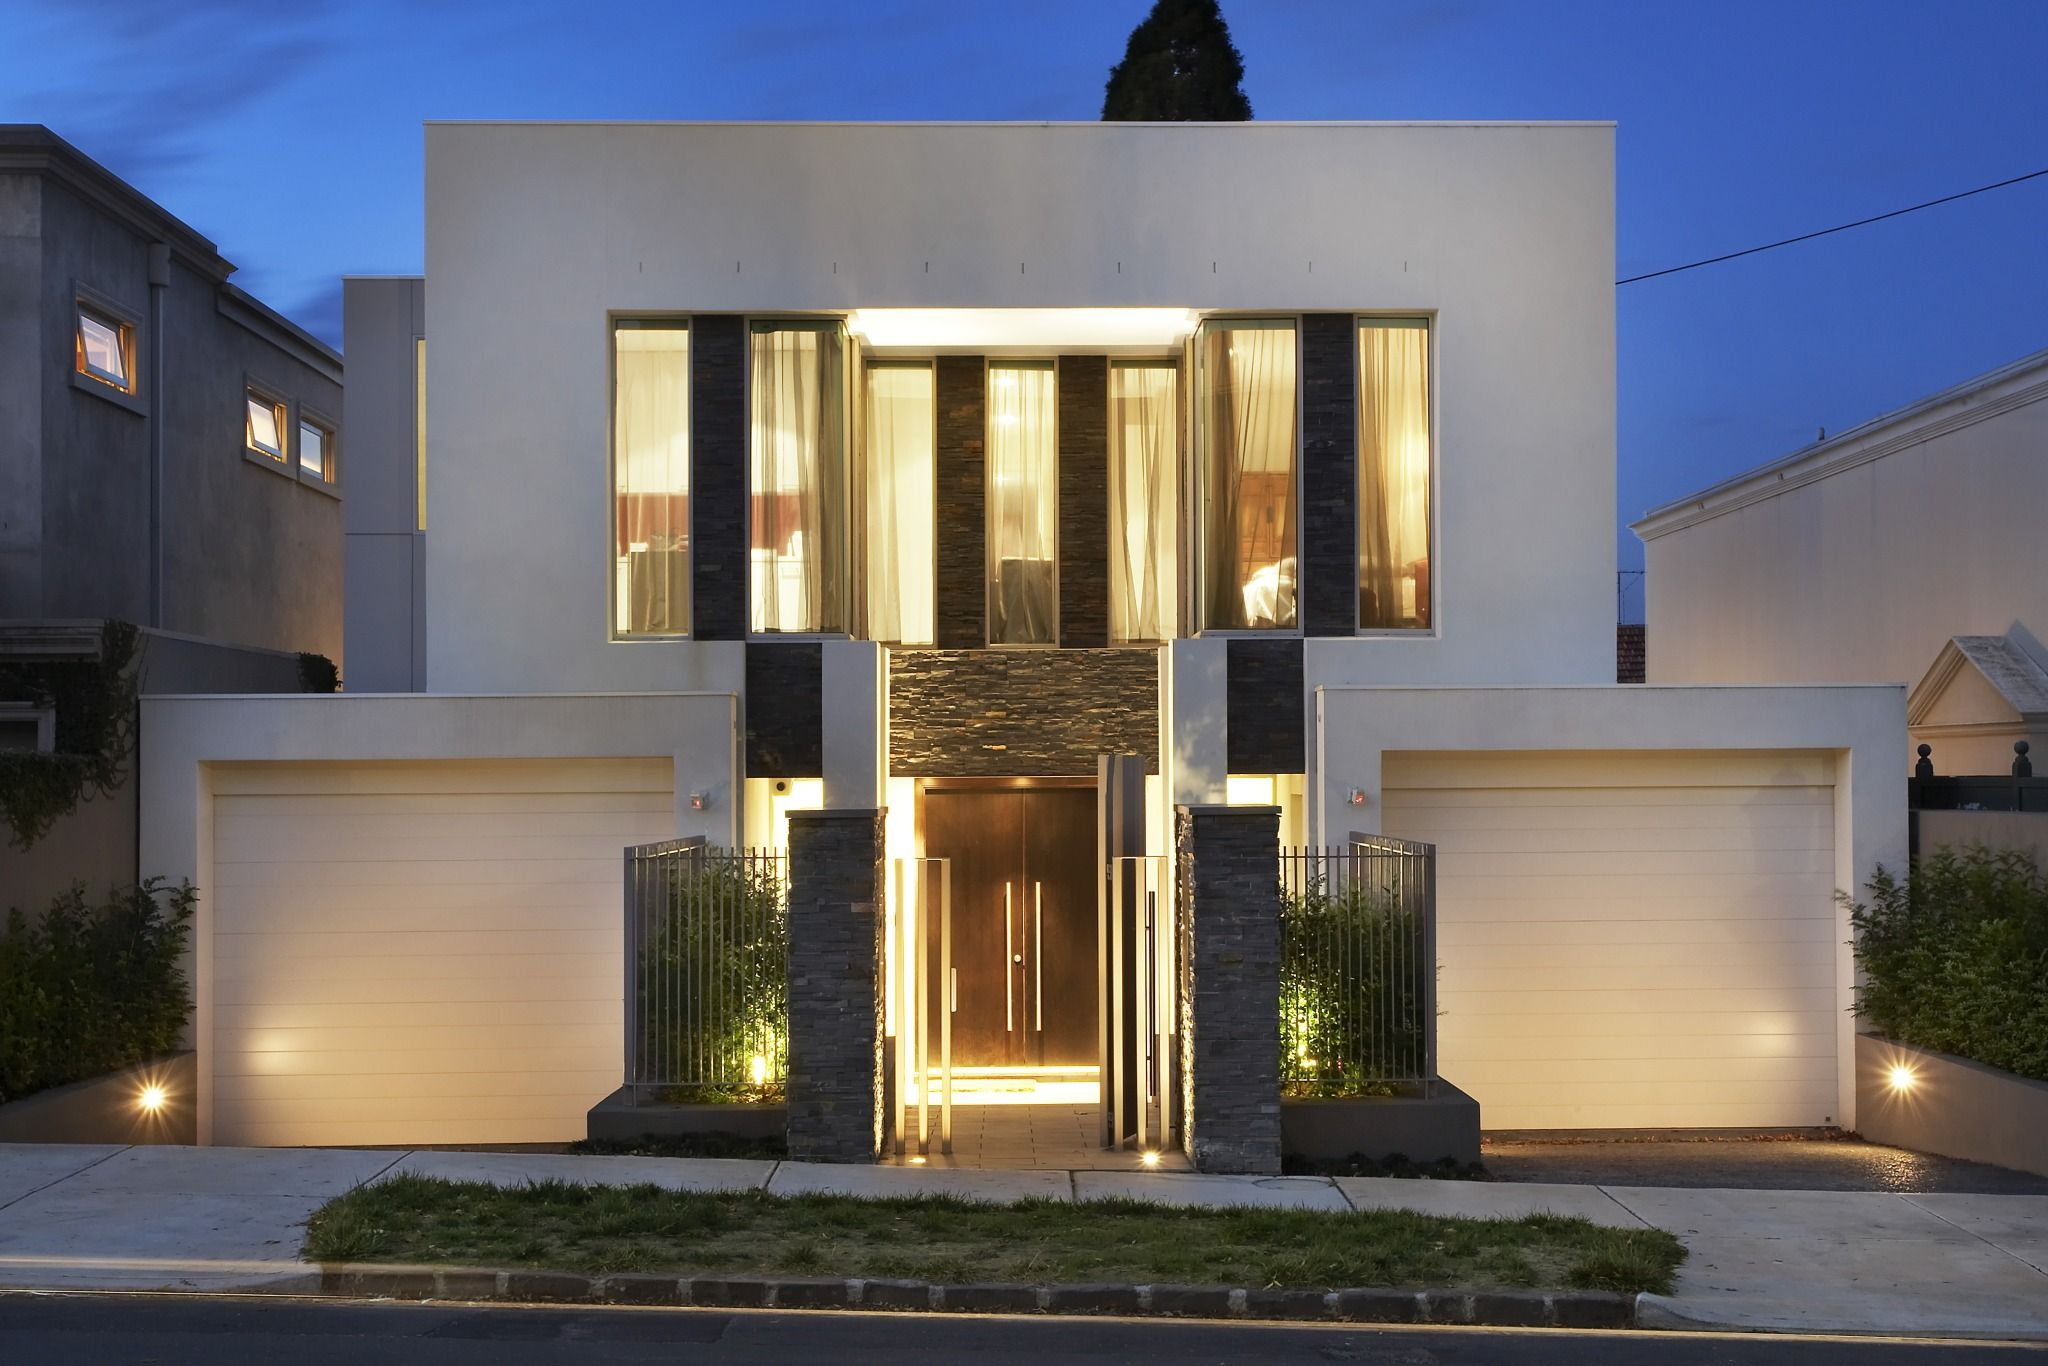 35 best House design images on Pinterest | House design, Facades and ...